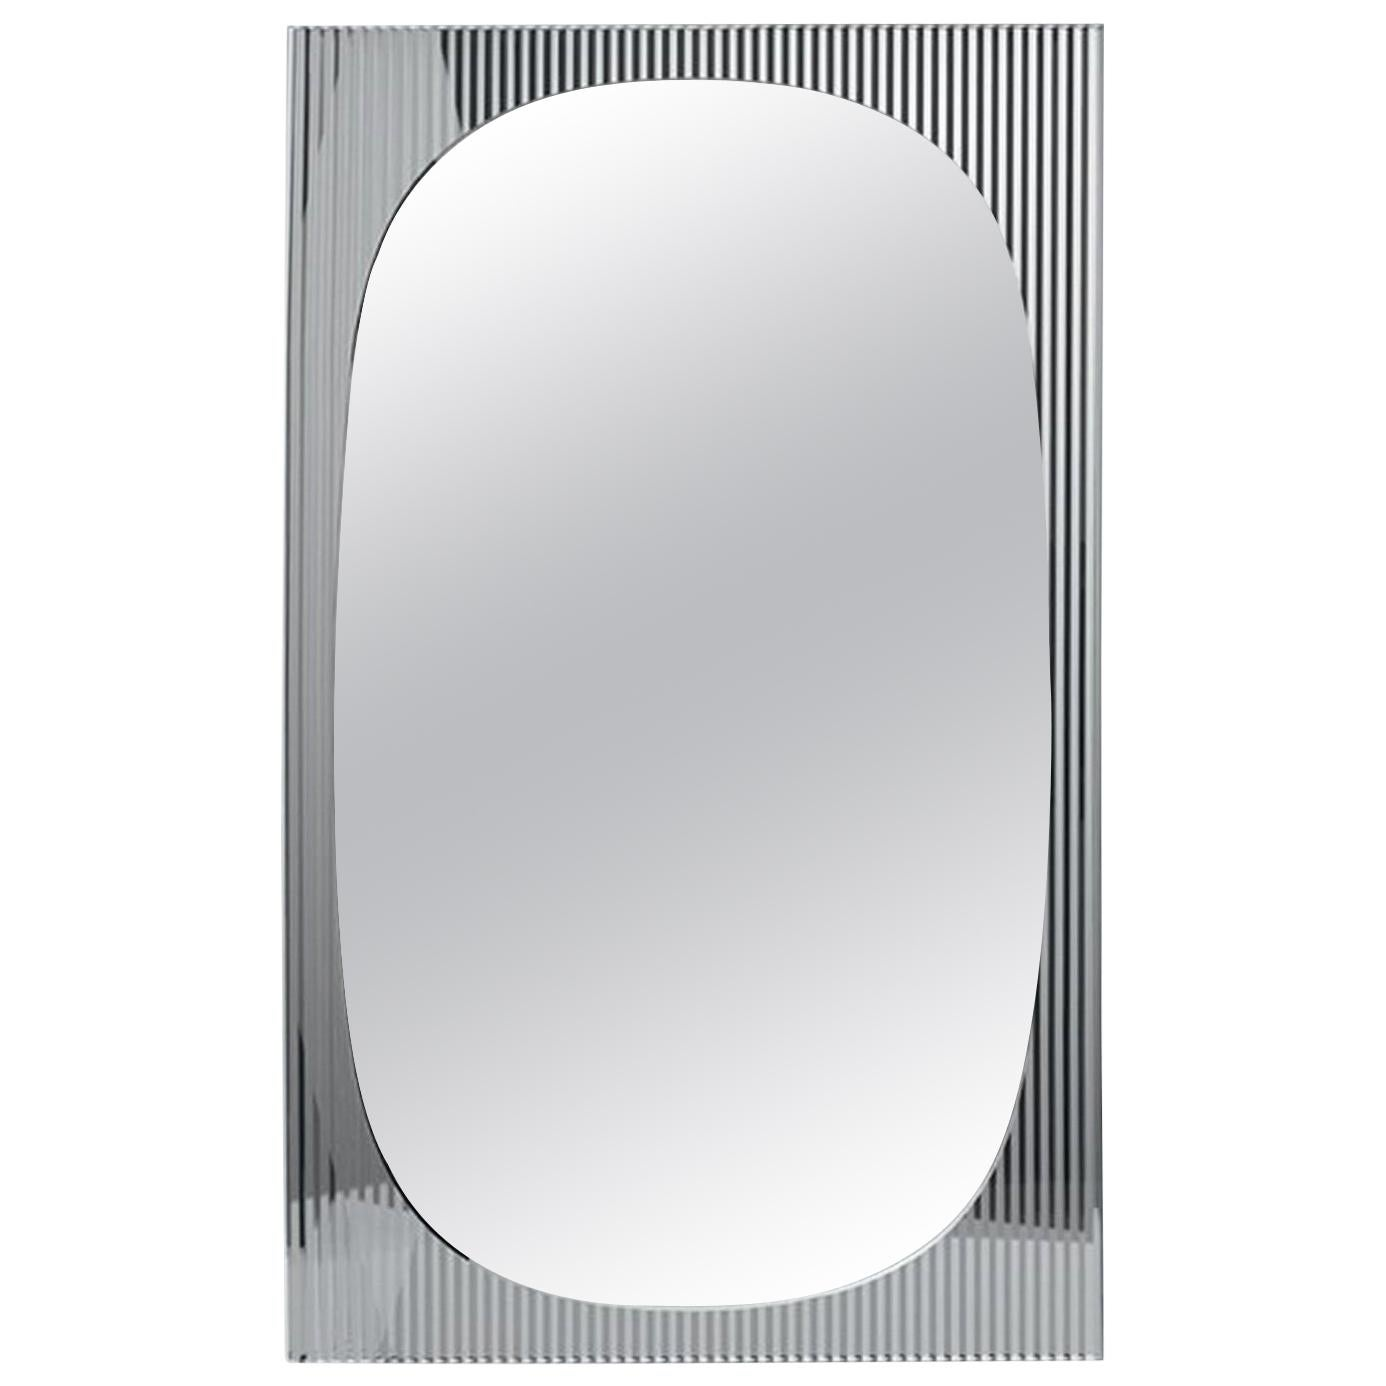 In Stock in Los Angeles, Bands Floor Mirror by Angeletti Ruzza, Made in Italy